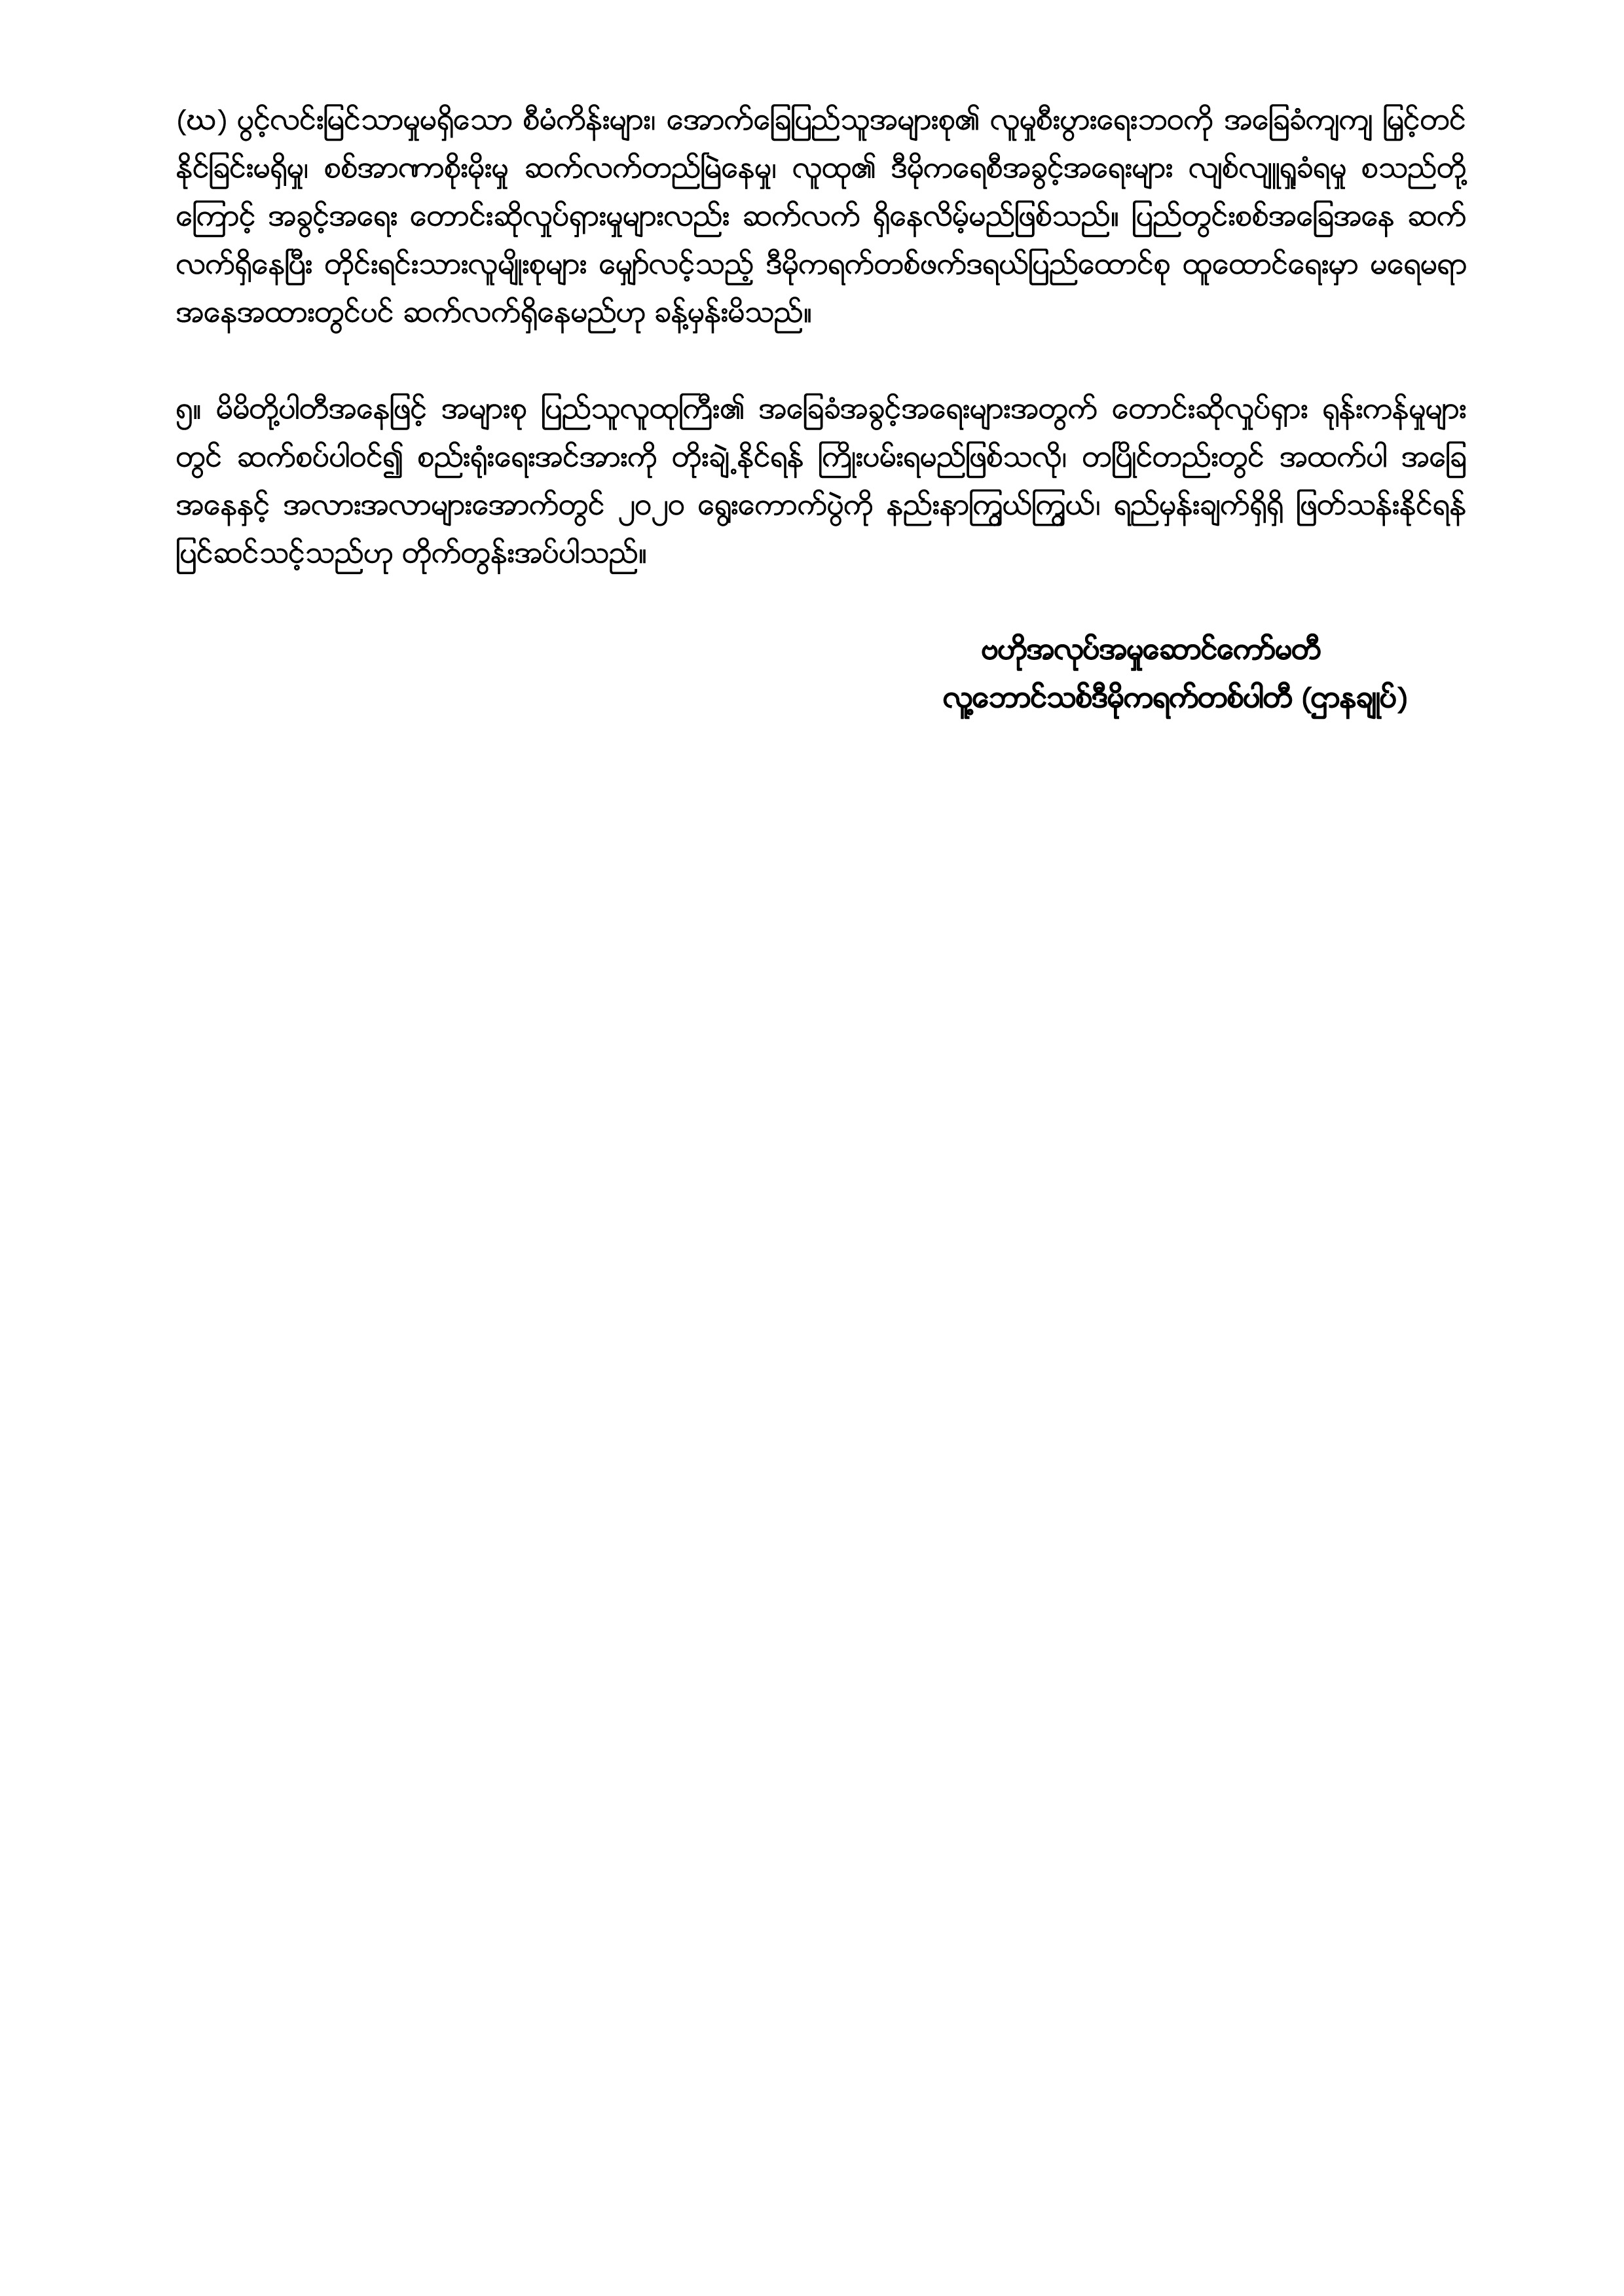 Current-Political-Situation-Report-to-CEC-4-2019-28-4-2019-2